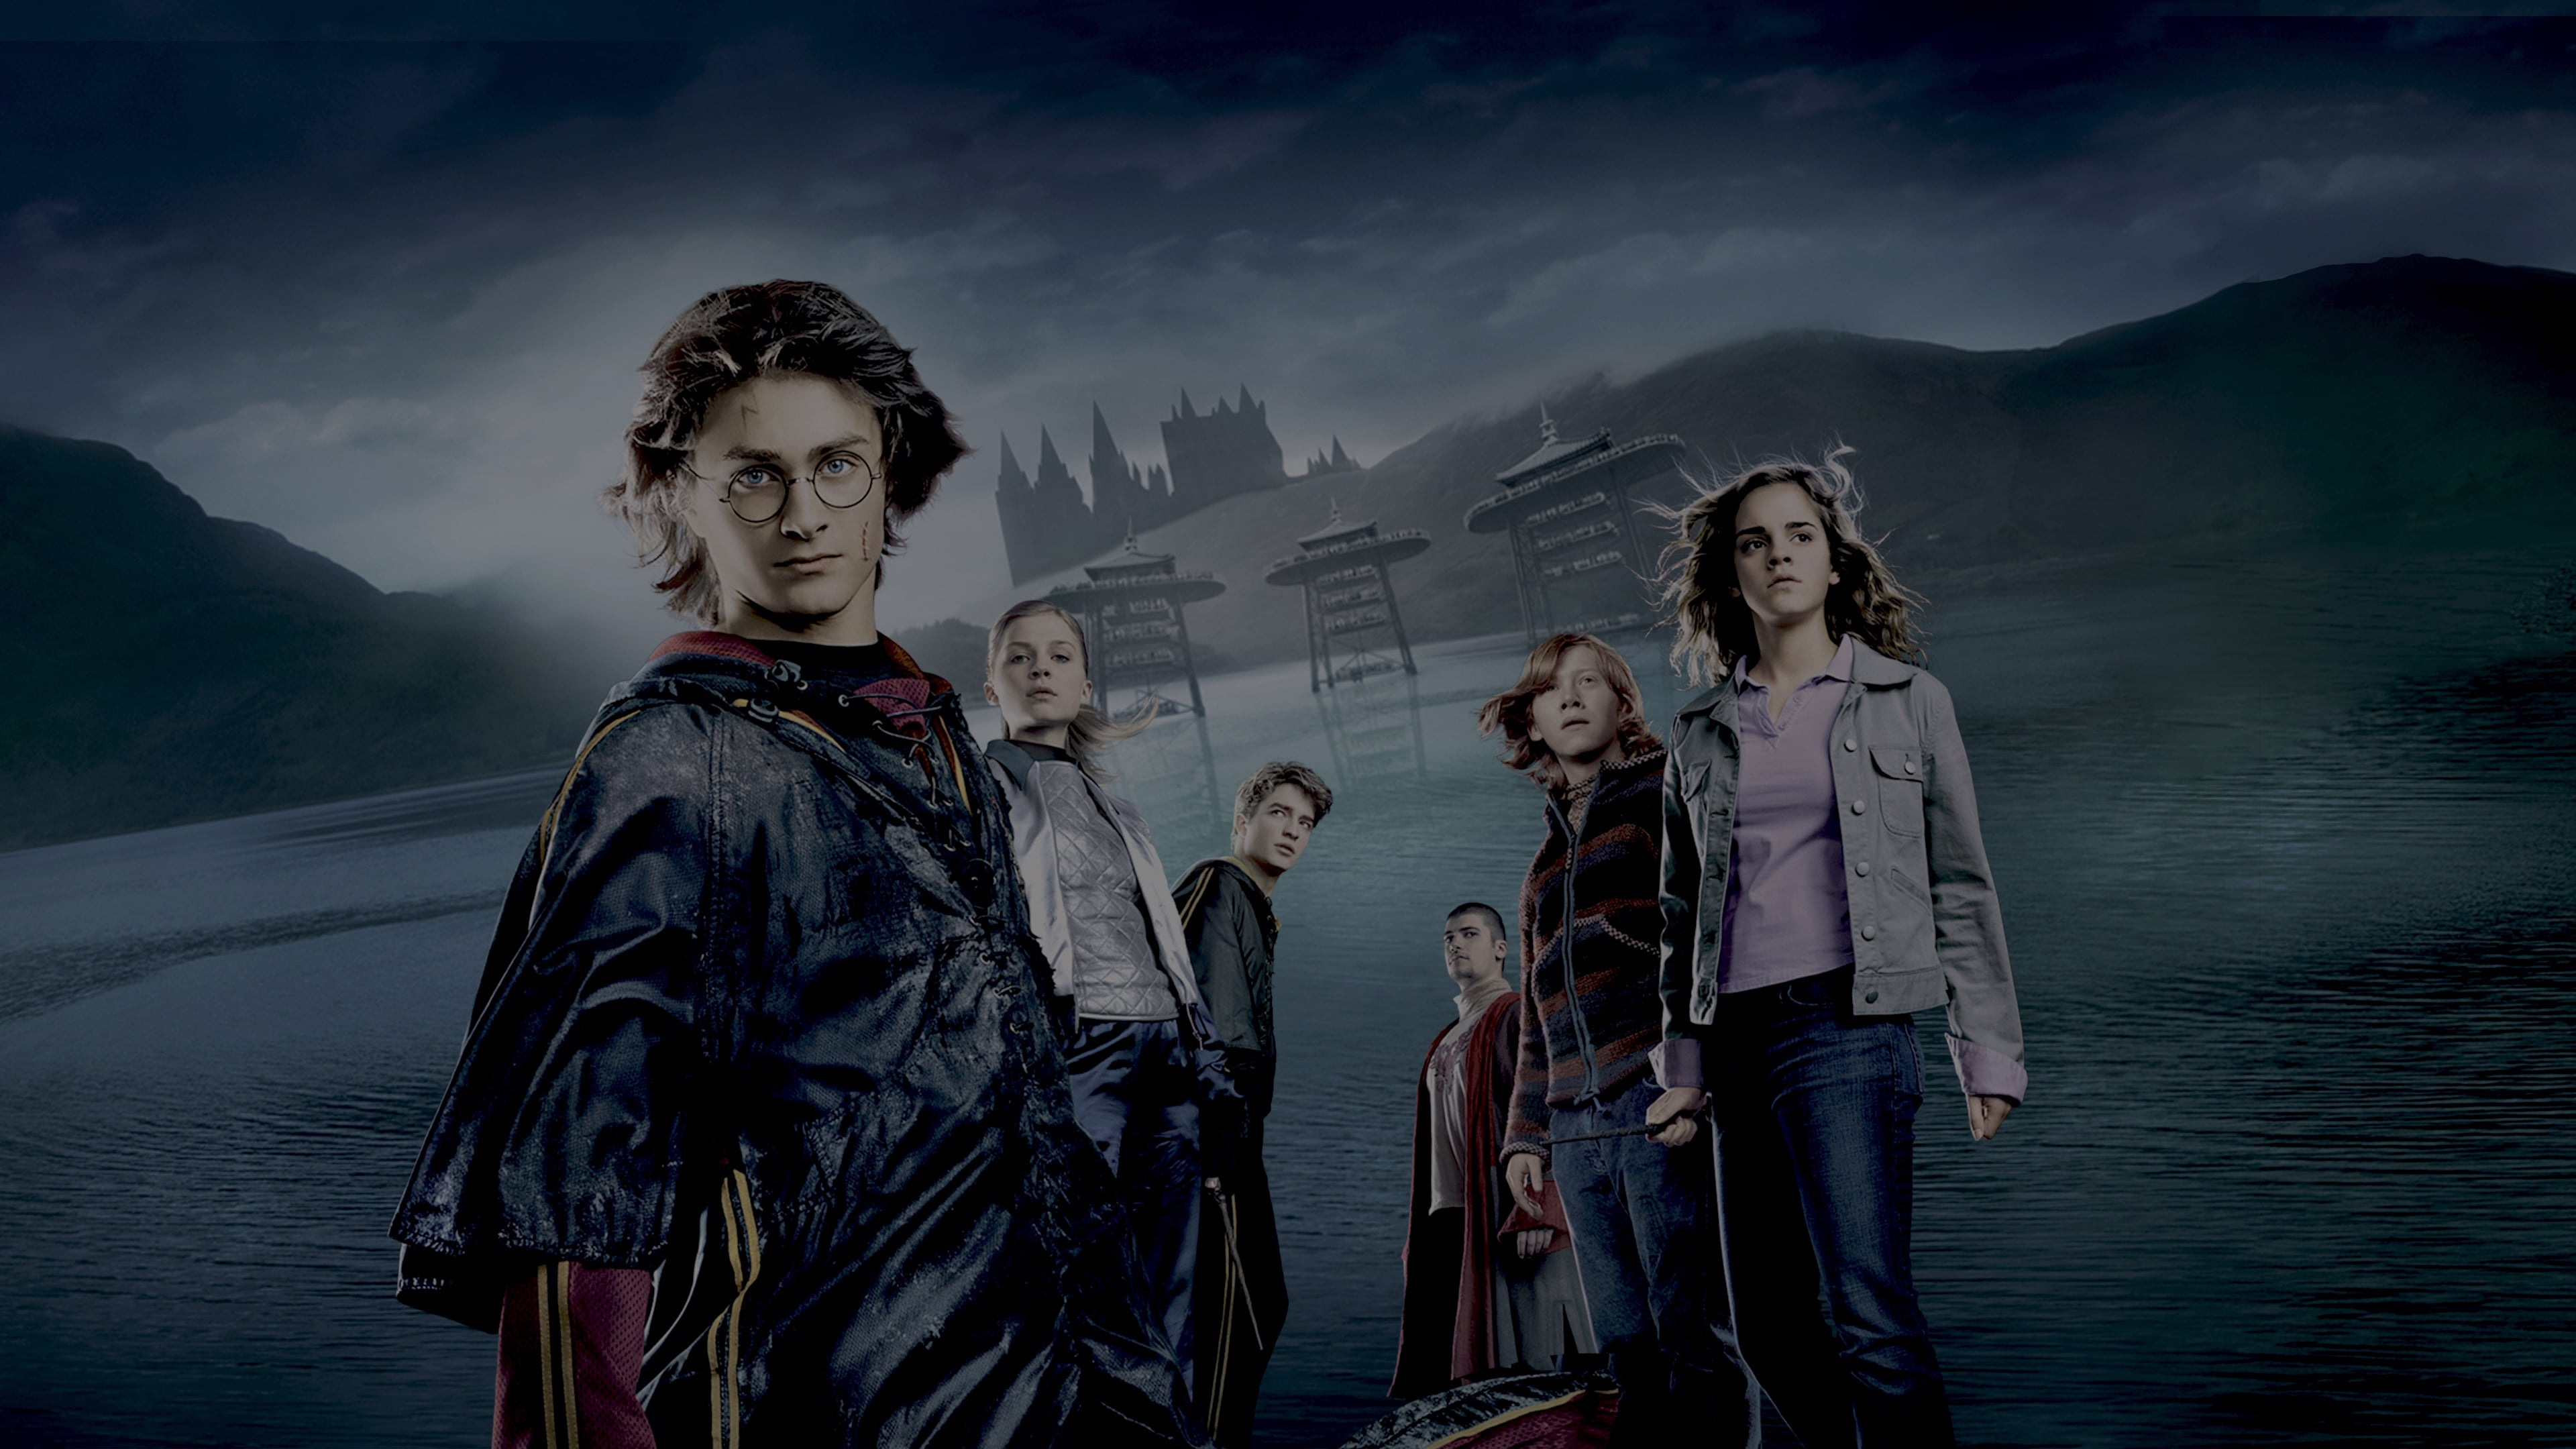 Regarder harry potter et la coupe de feu film streaming - Streaming harry potter et la coupe de feu ...